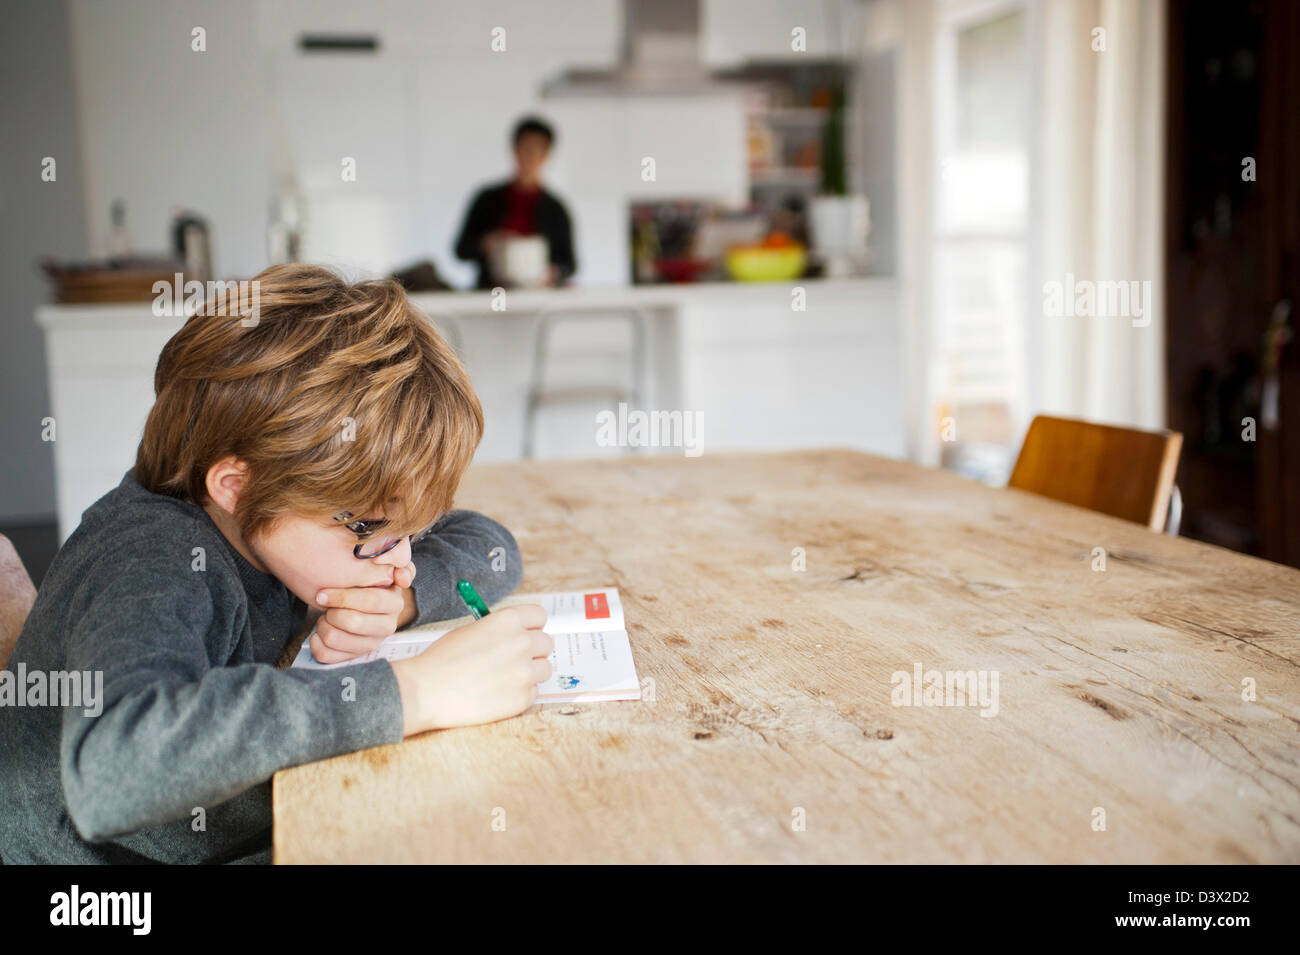 10 Year Old Boy Is Doing Homework At The Kitchen Table In A Modern